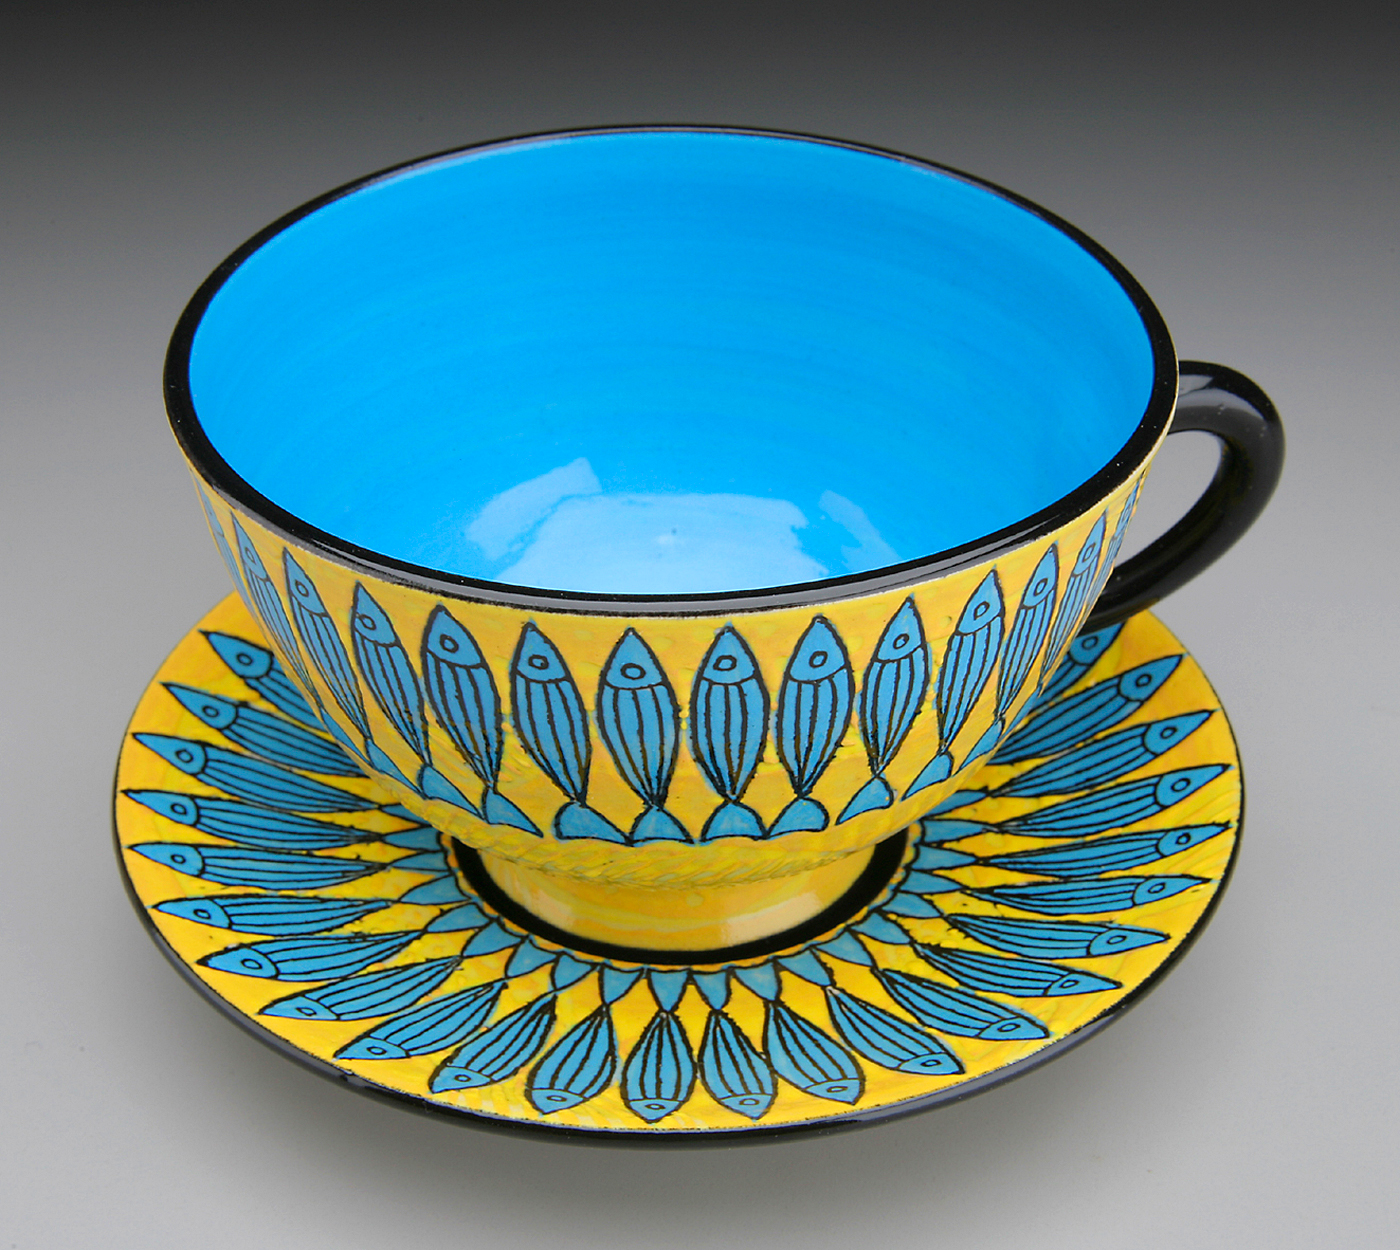 Blue Fish Teacup